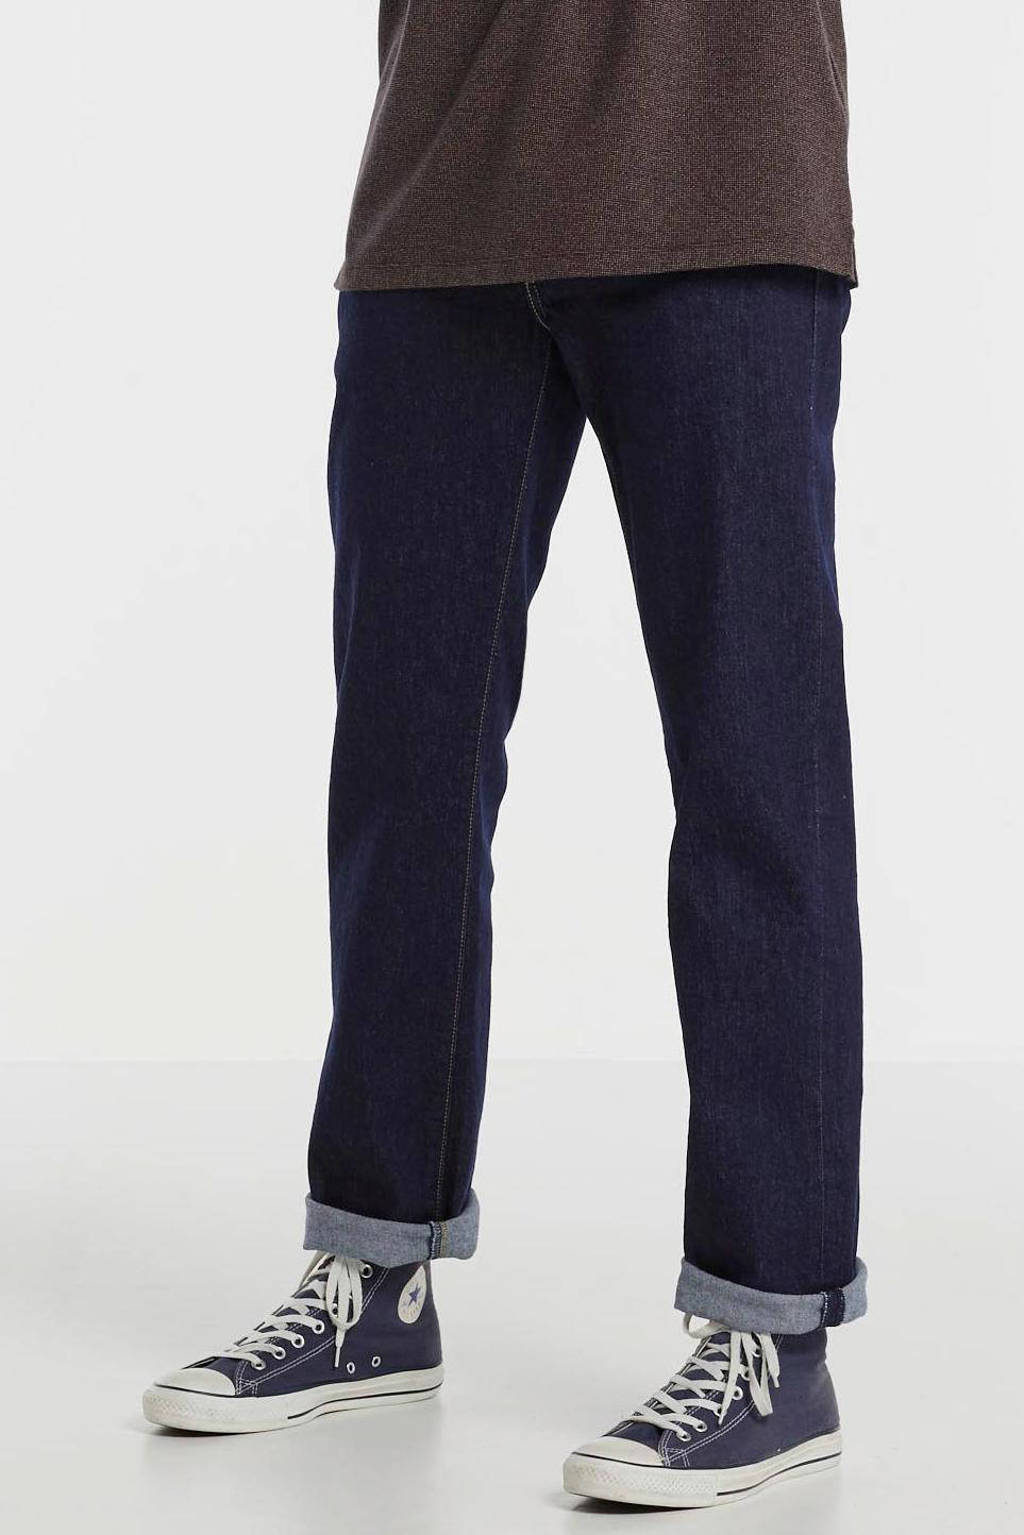 Levi's straight fit jeans 514 chain rinse, CHAIN RINSE